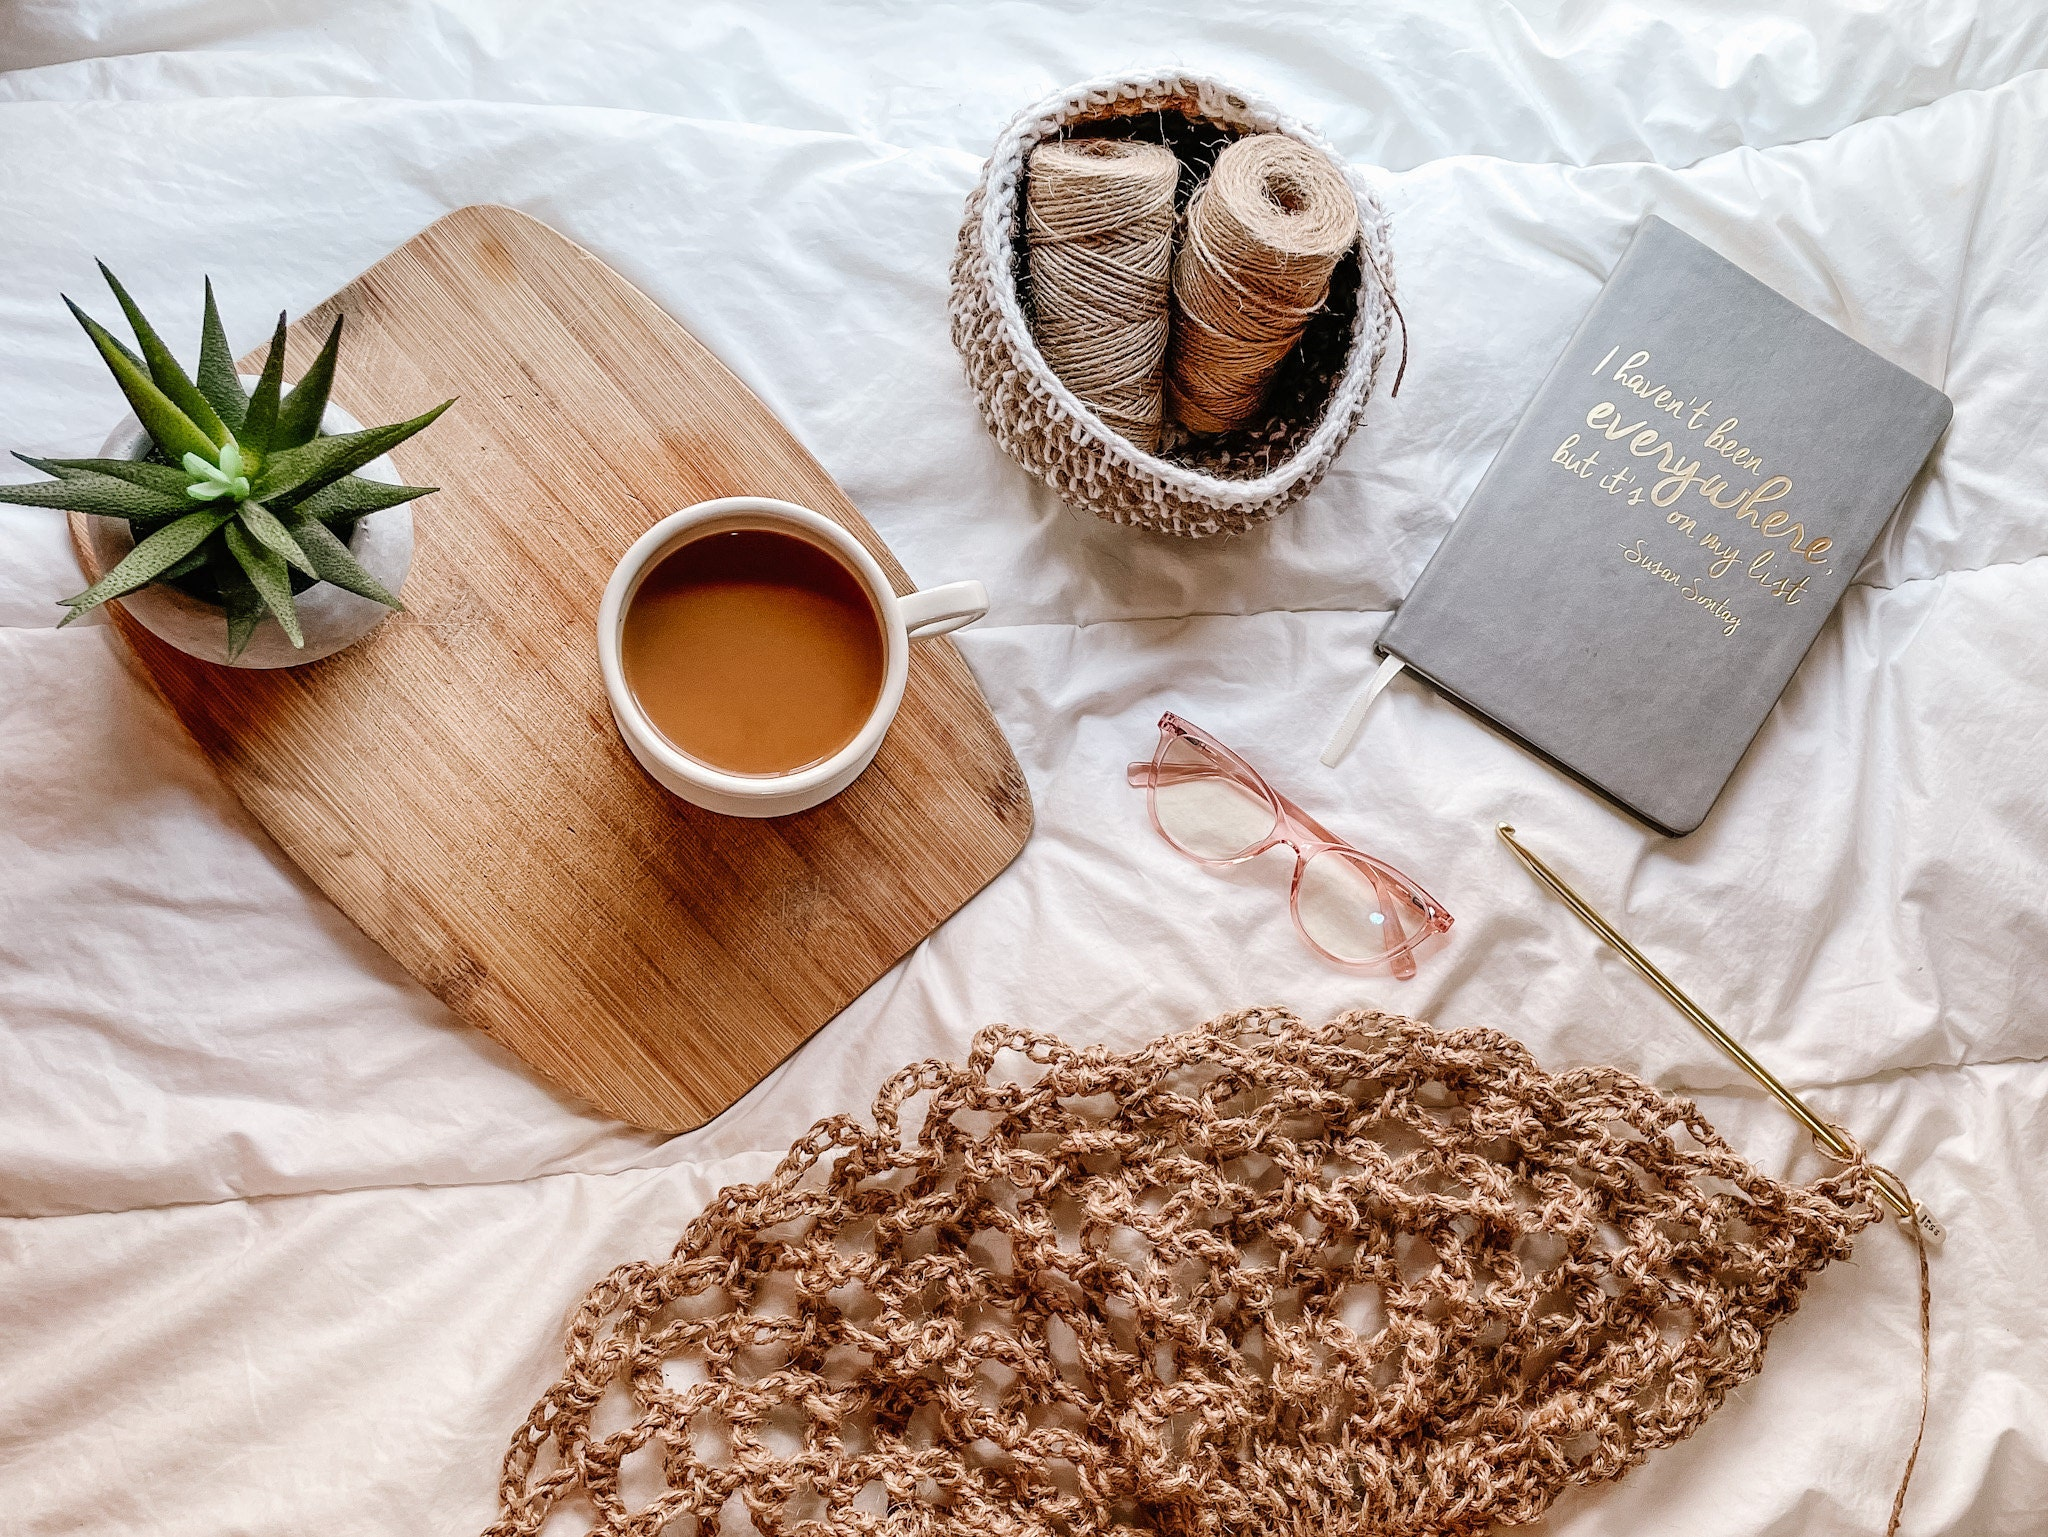 Planner, Crochet, and a cup of coffee